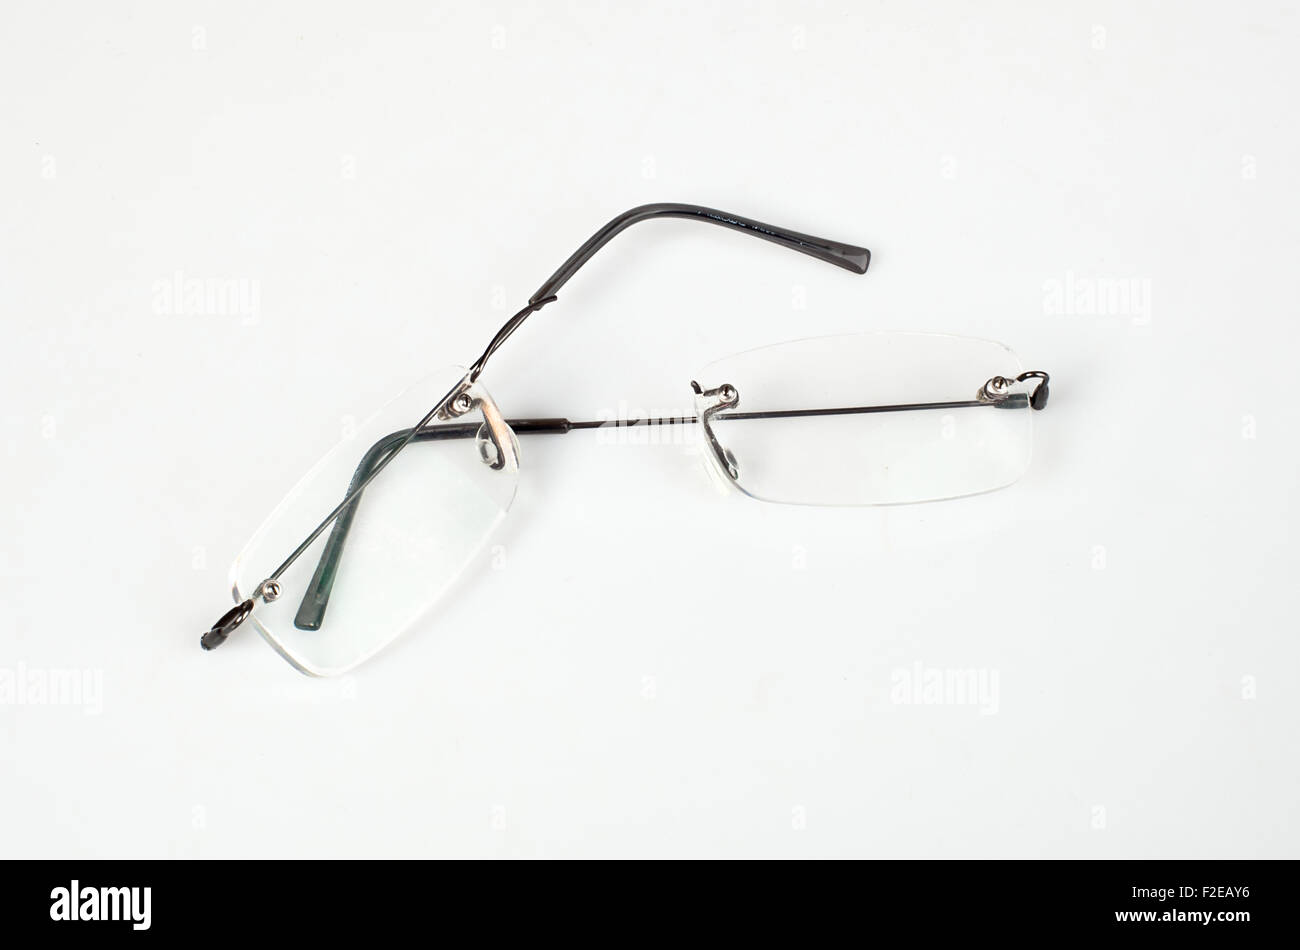 Eyeglasses with lightweight frame broken on white table Stock Photo ...